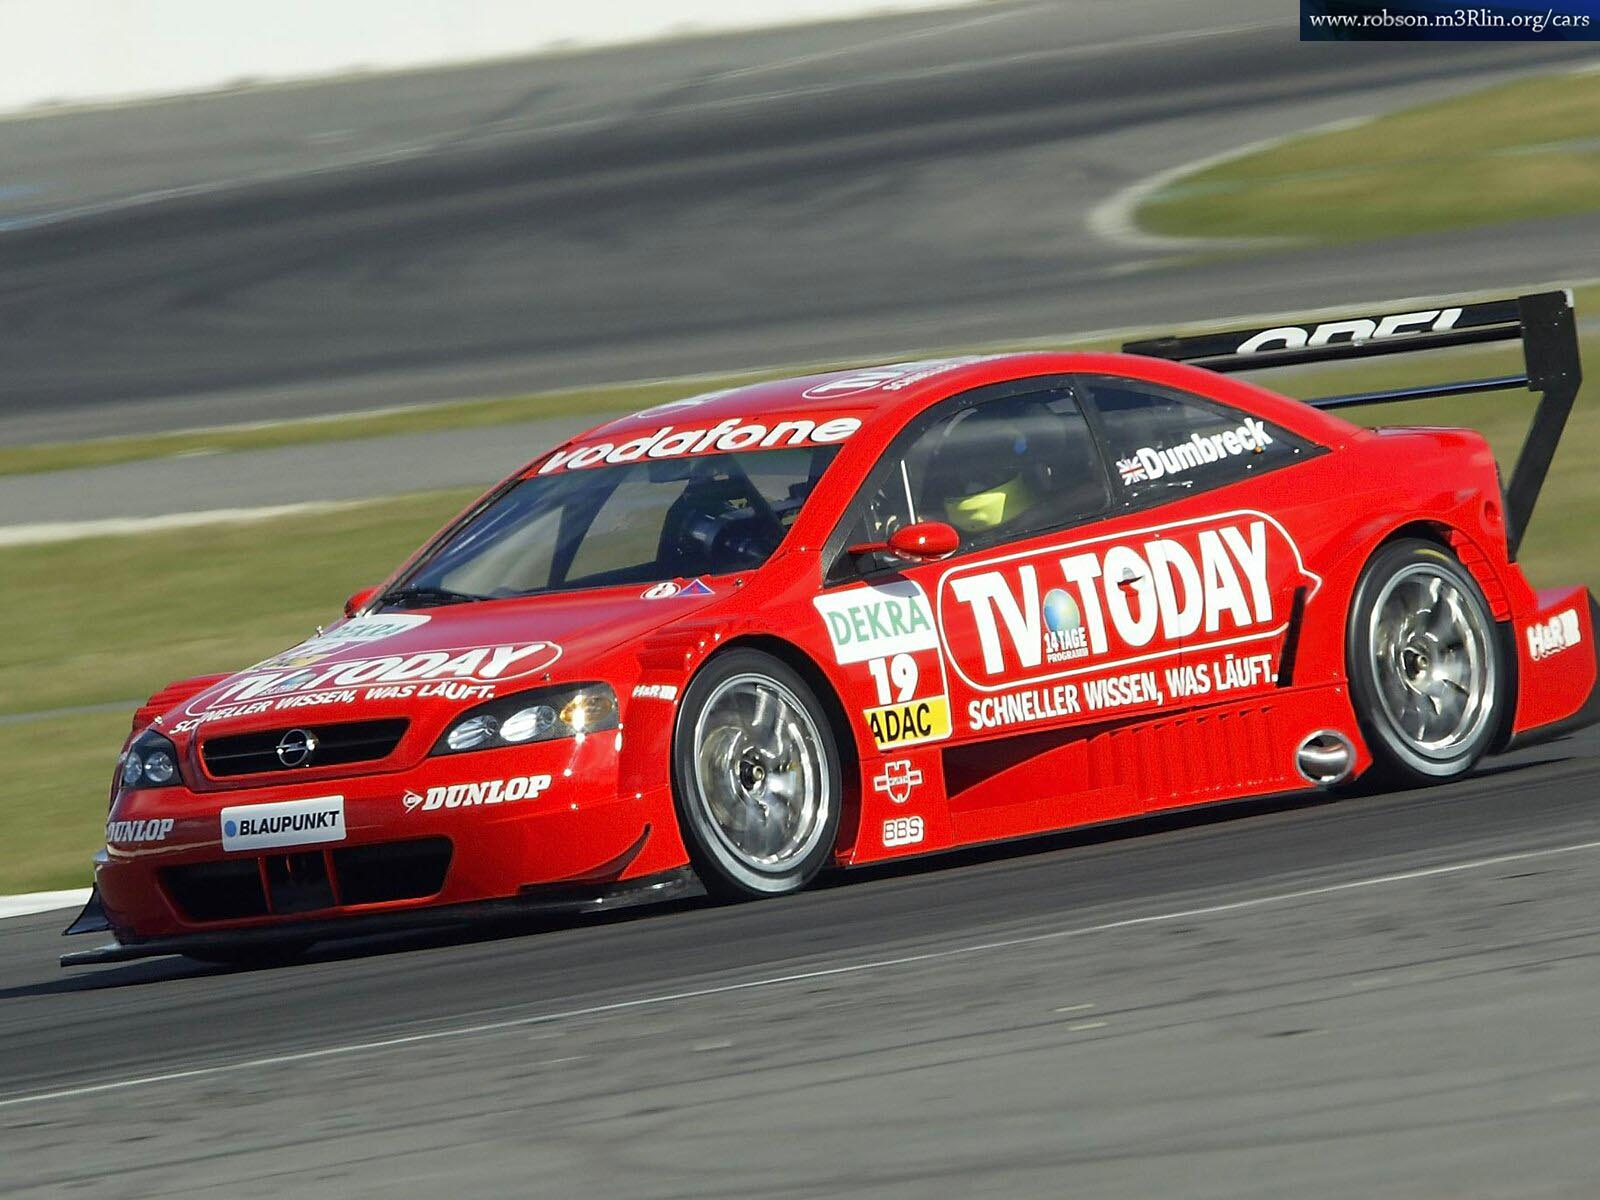 opel astra dtm cars wallpaper gallery and reviews. Black Bedroom Furniture Sets. Home Design Ideas